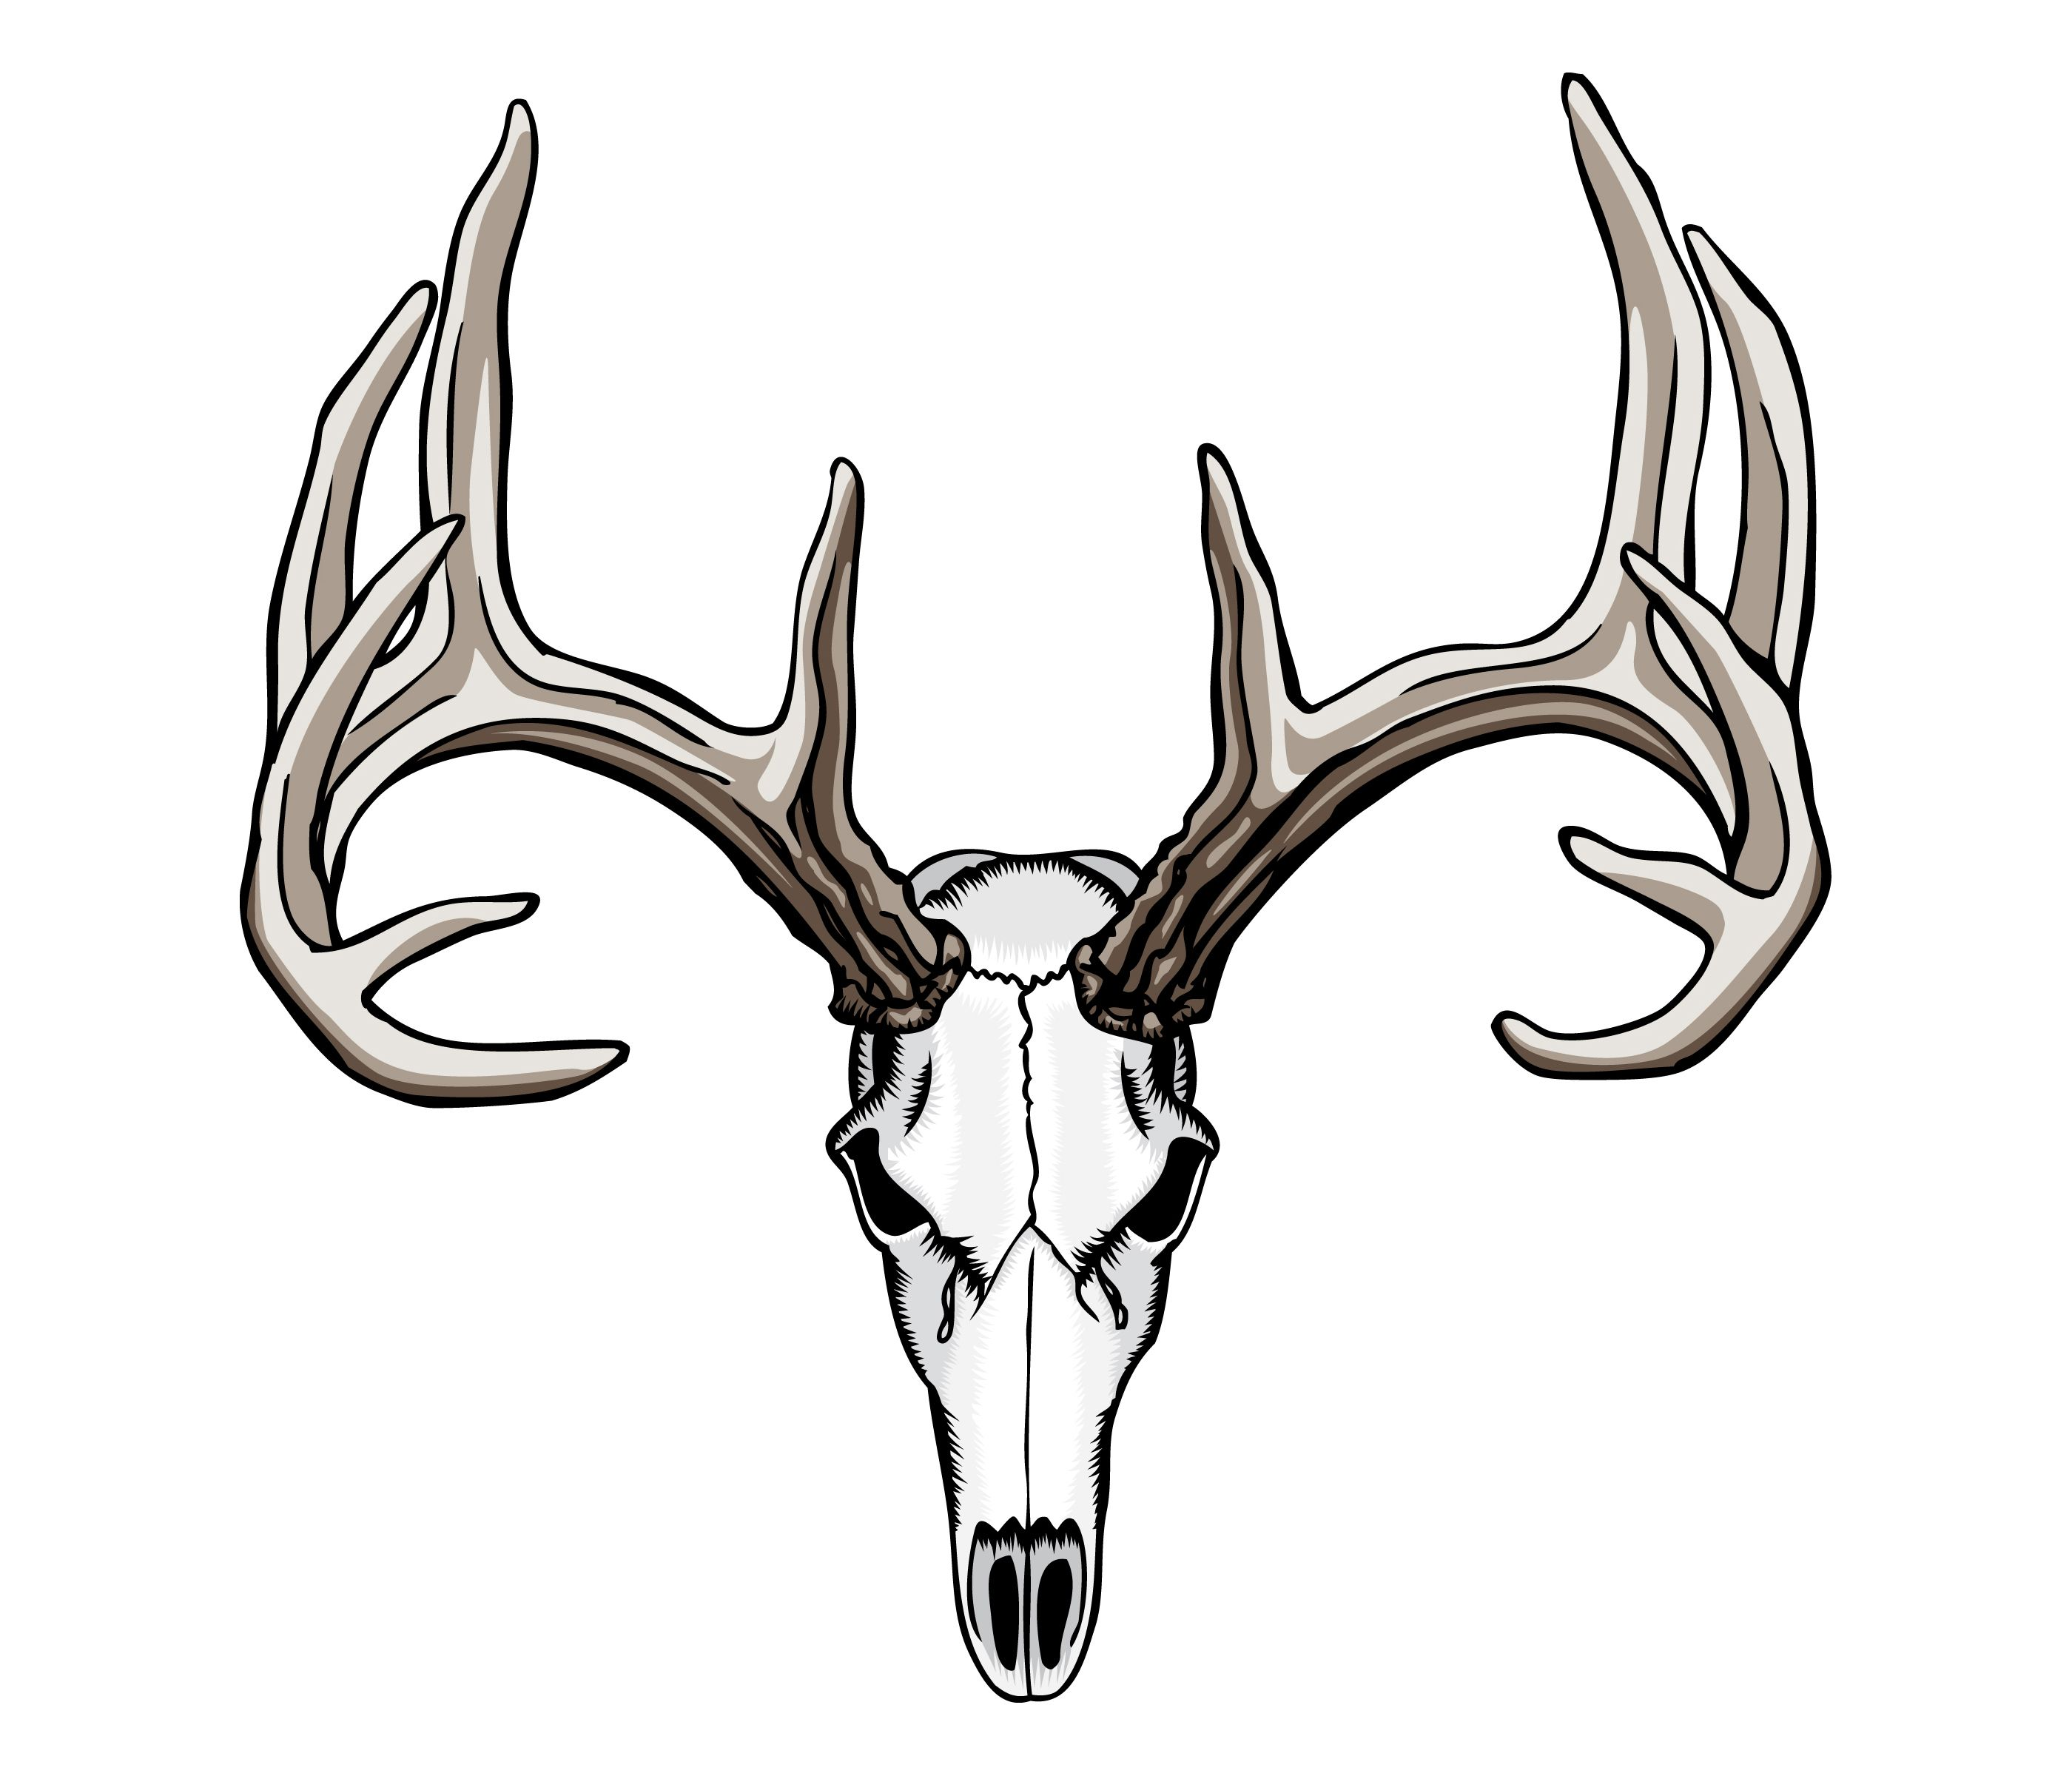 whitetail deer skull tattoos art nouveau pinterest rh pinterest com Deer Skull Tattoos deer head tattoo designs